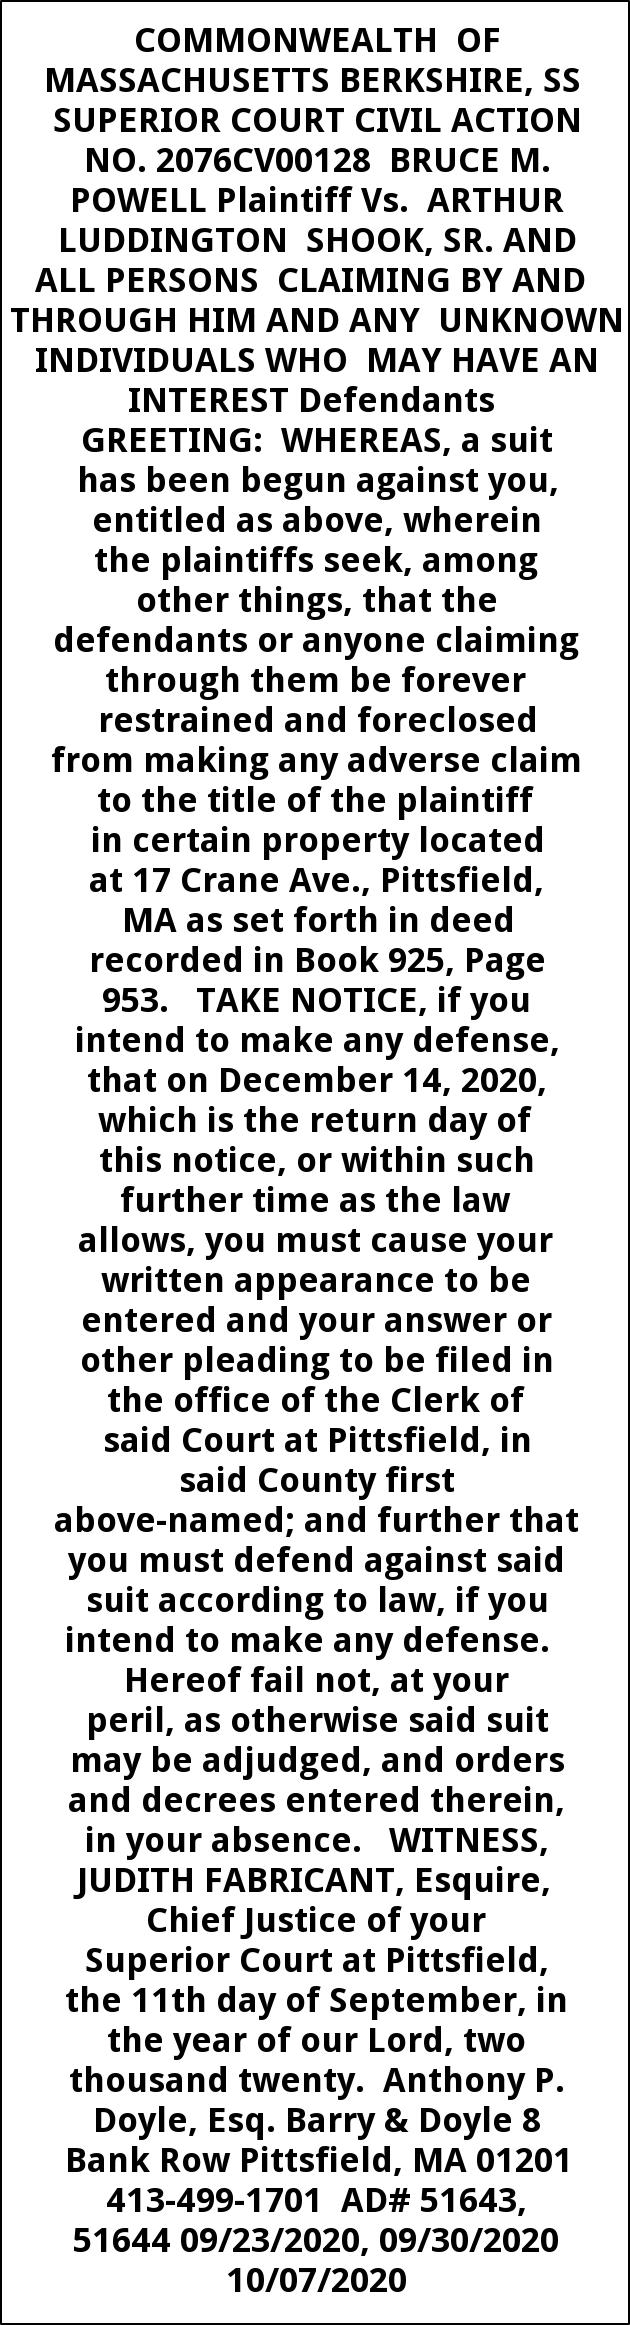 Buce M. Powell Plaintiff Vs. Arthur Luddington Shook